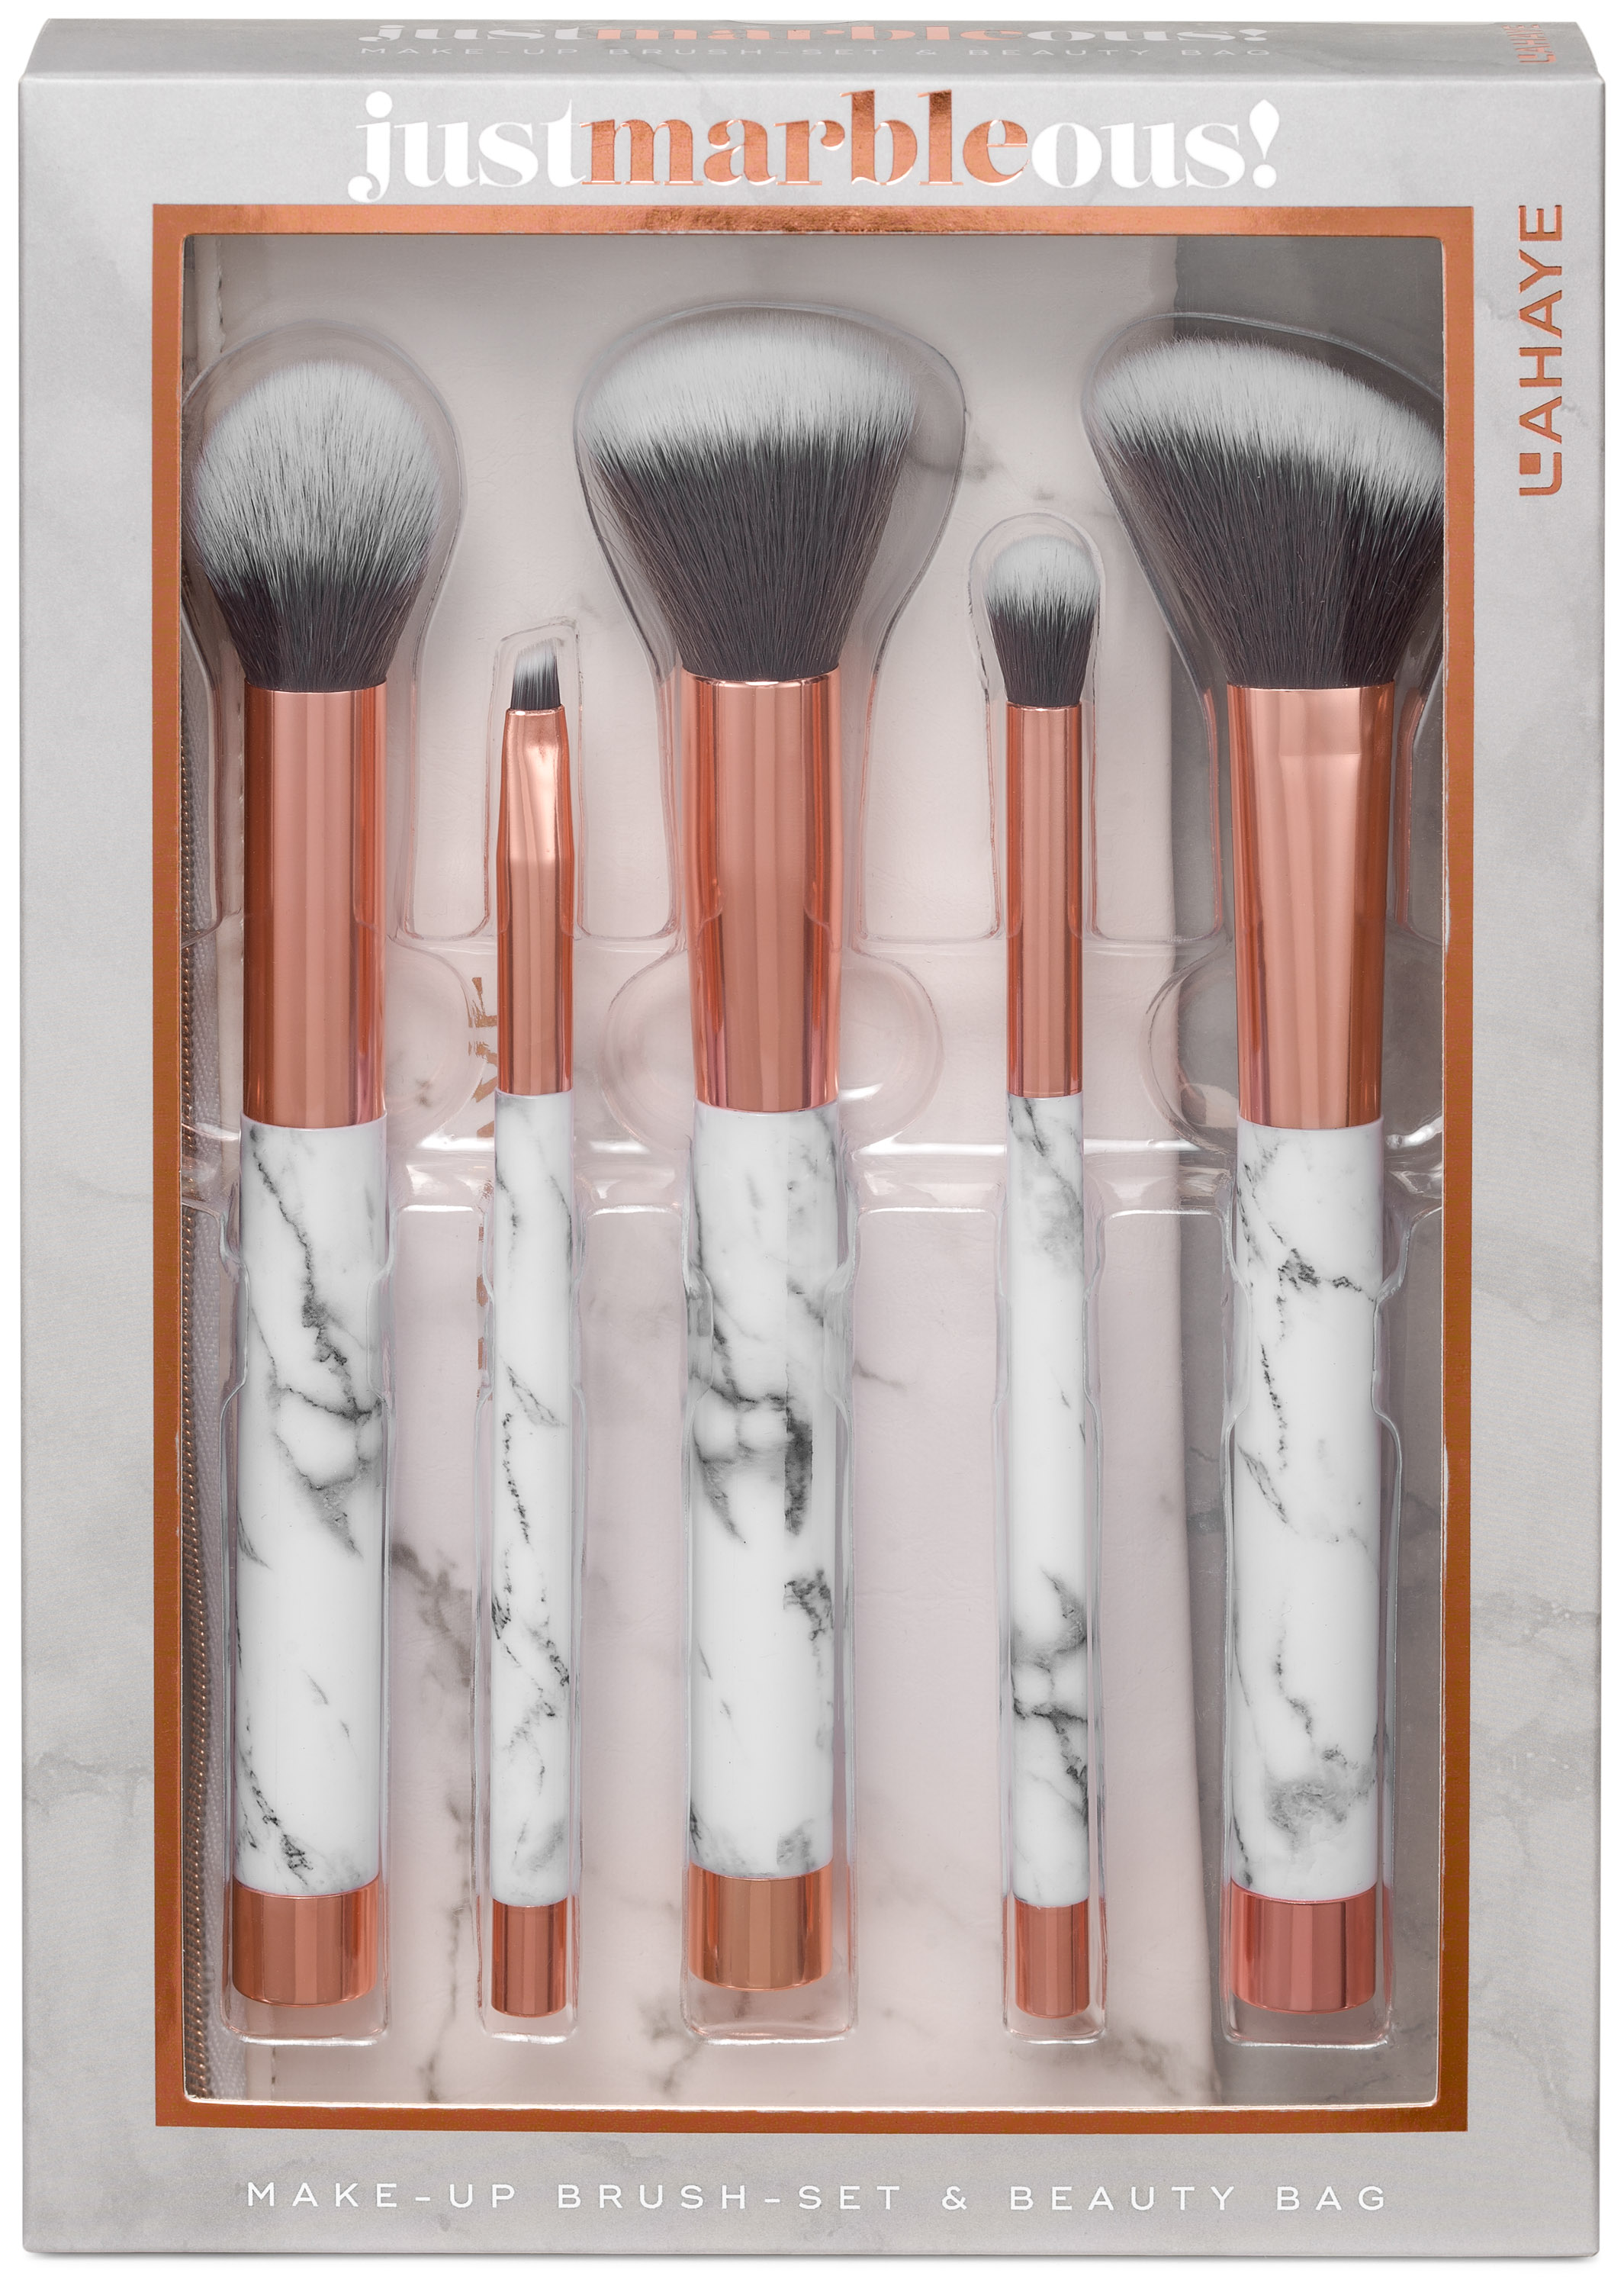 Pinsel Set Lahaye Marble Ous Pinsel Set 5 Teiliges Make Up Brush Set Mit Beauty Bag